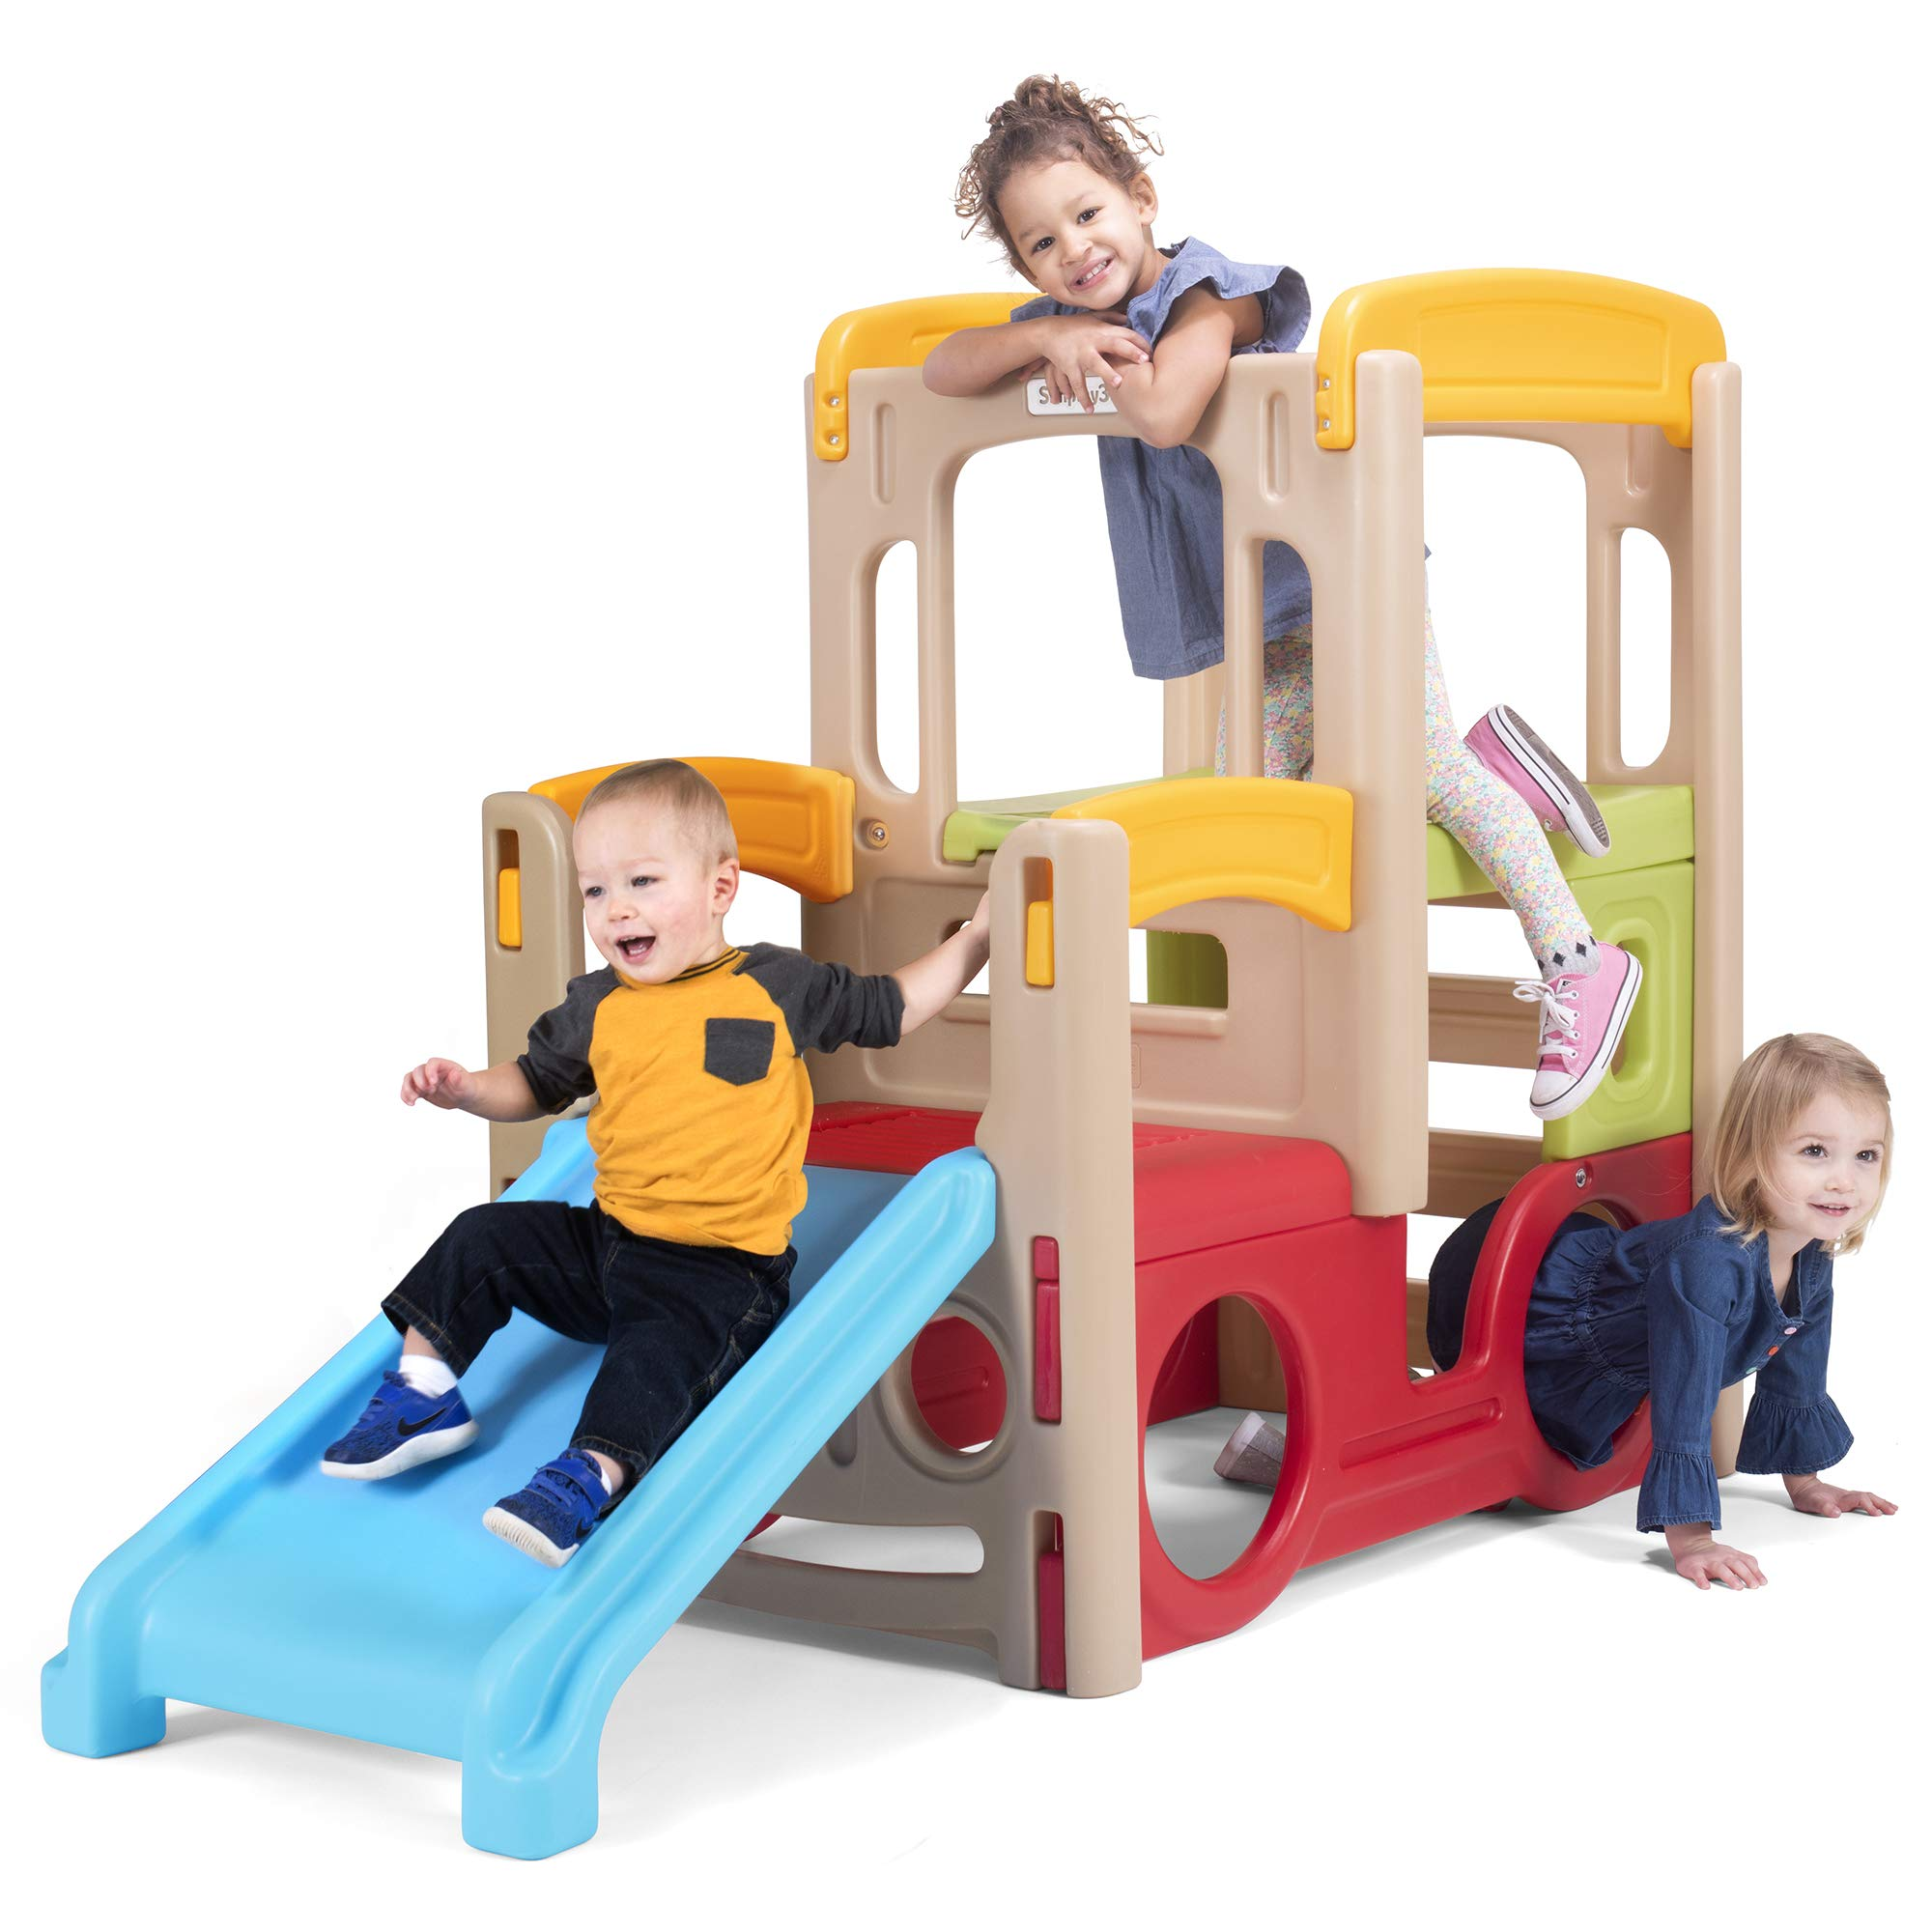 Simplay3 Young Explorers Adventure Climber - Indoor Outdoor Crawl Climb Drive Slide Playset for Children by Simplay3